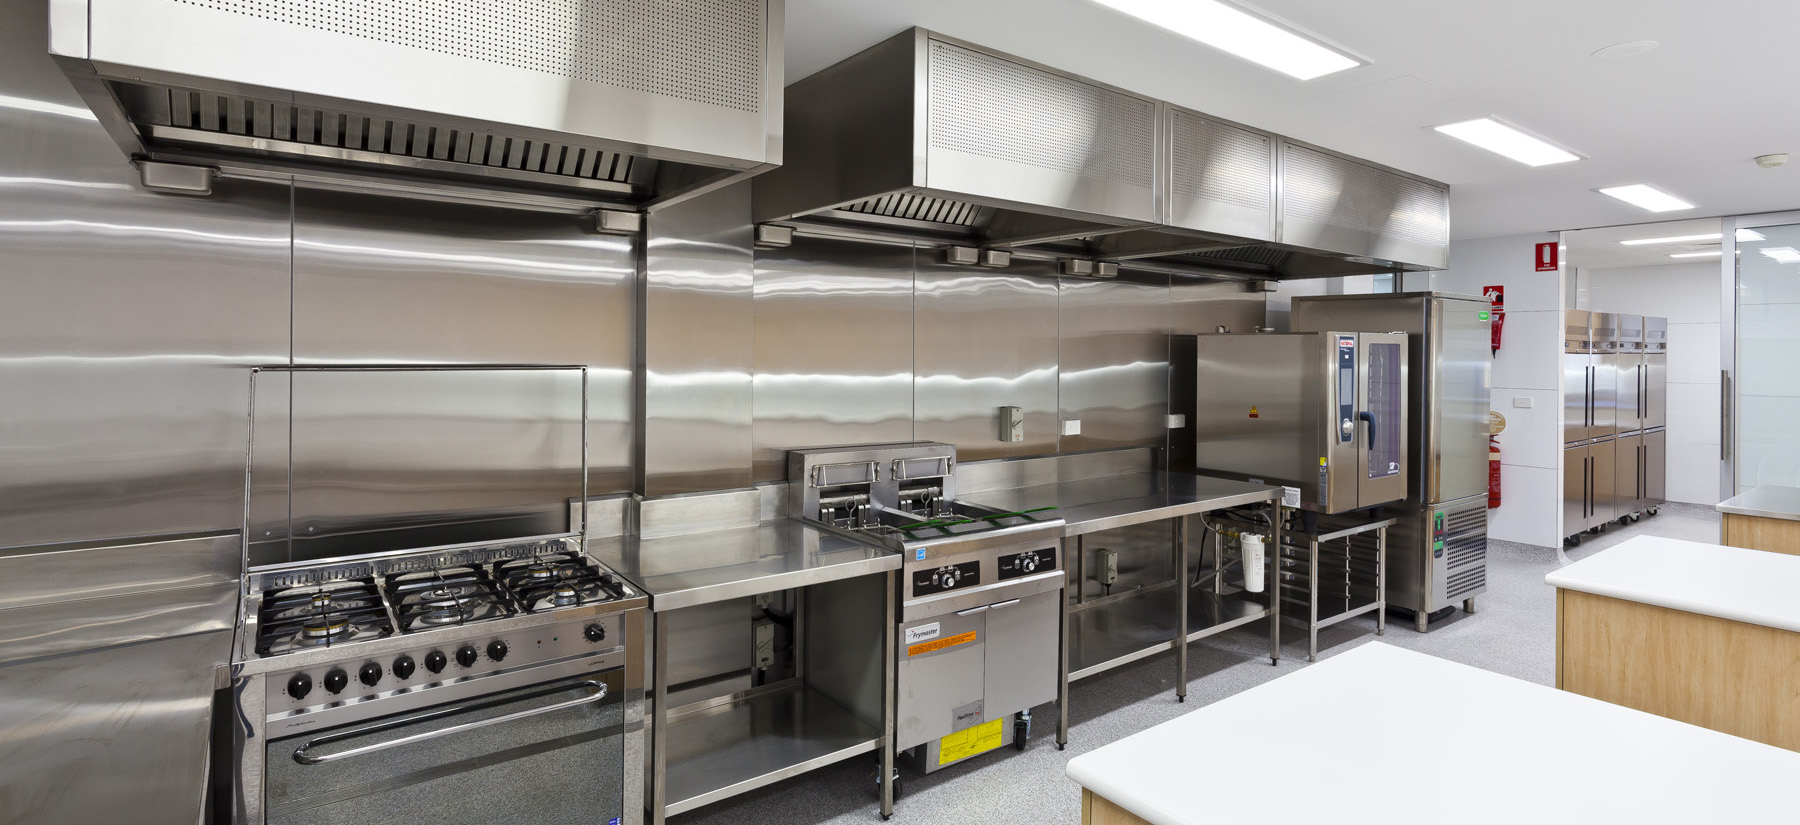 Commercial Appliance Repair Service in Coral Gables Florida | Miami ...